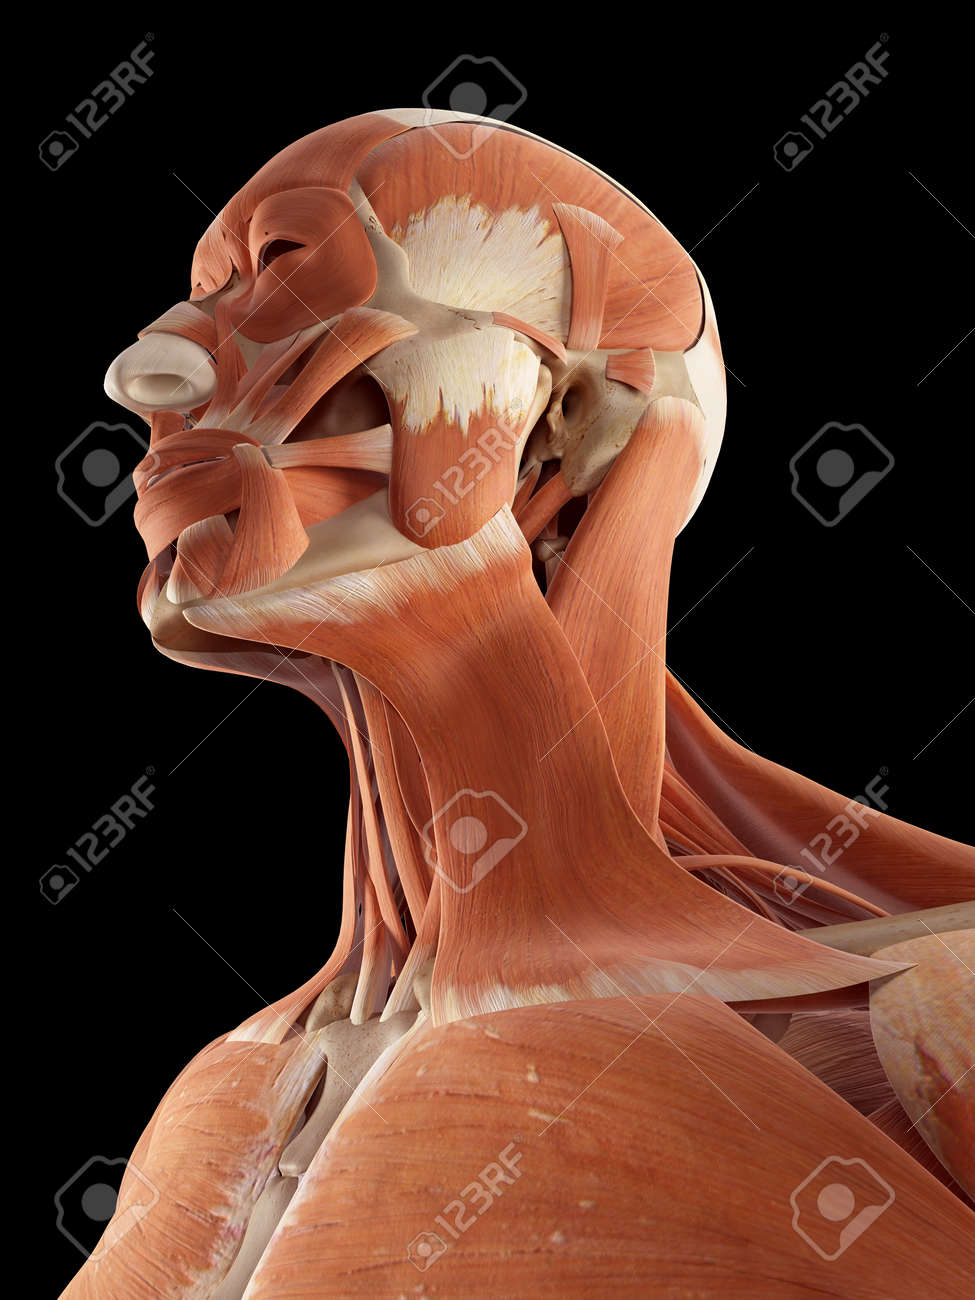 Medical Accurate Illustration Of The Head And Neck Muscles Stock